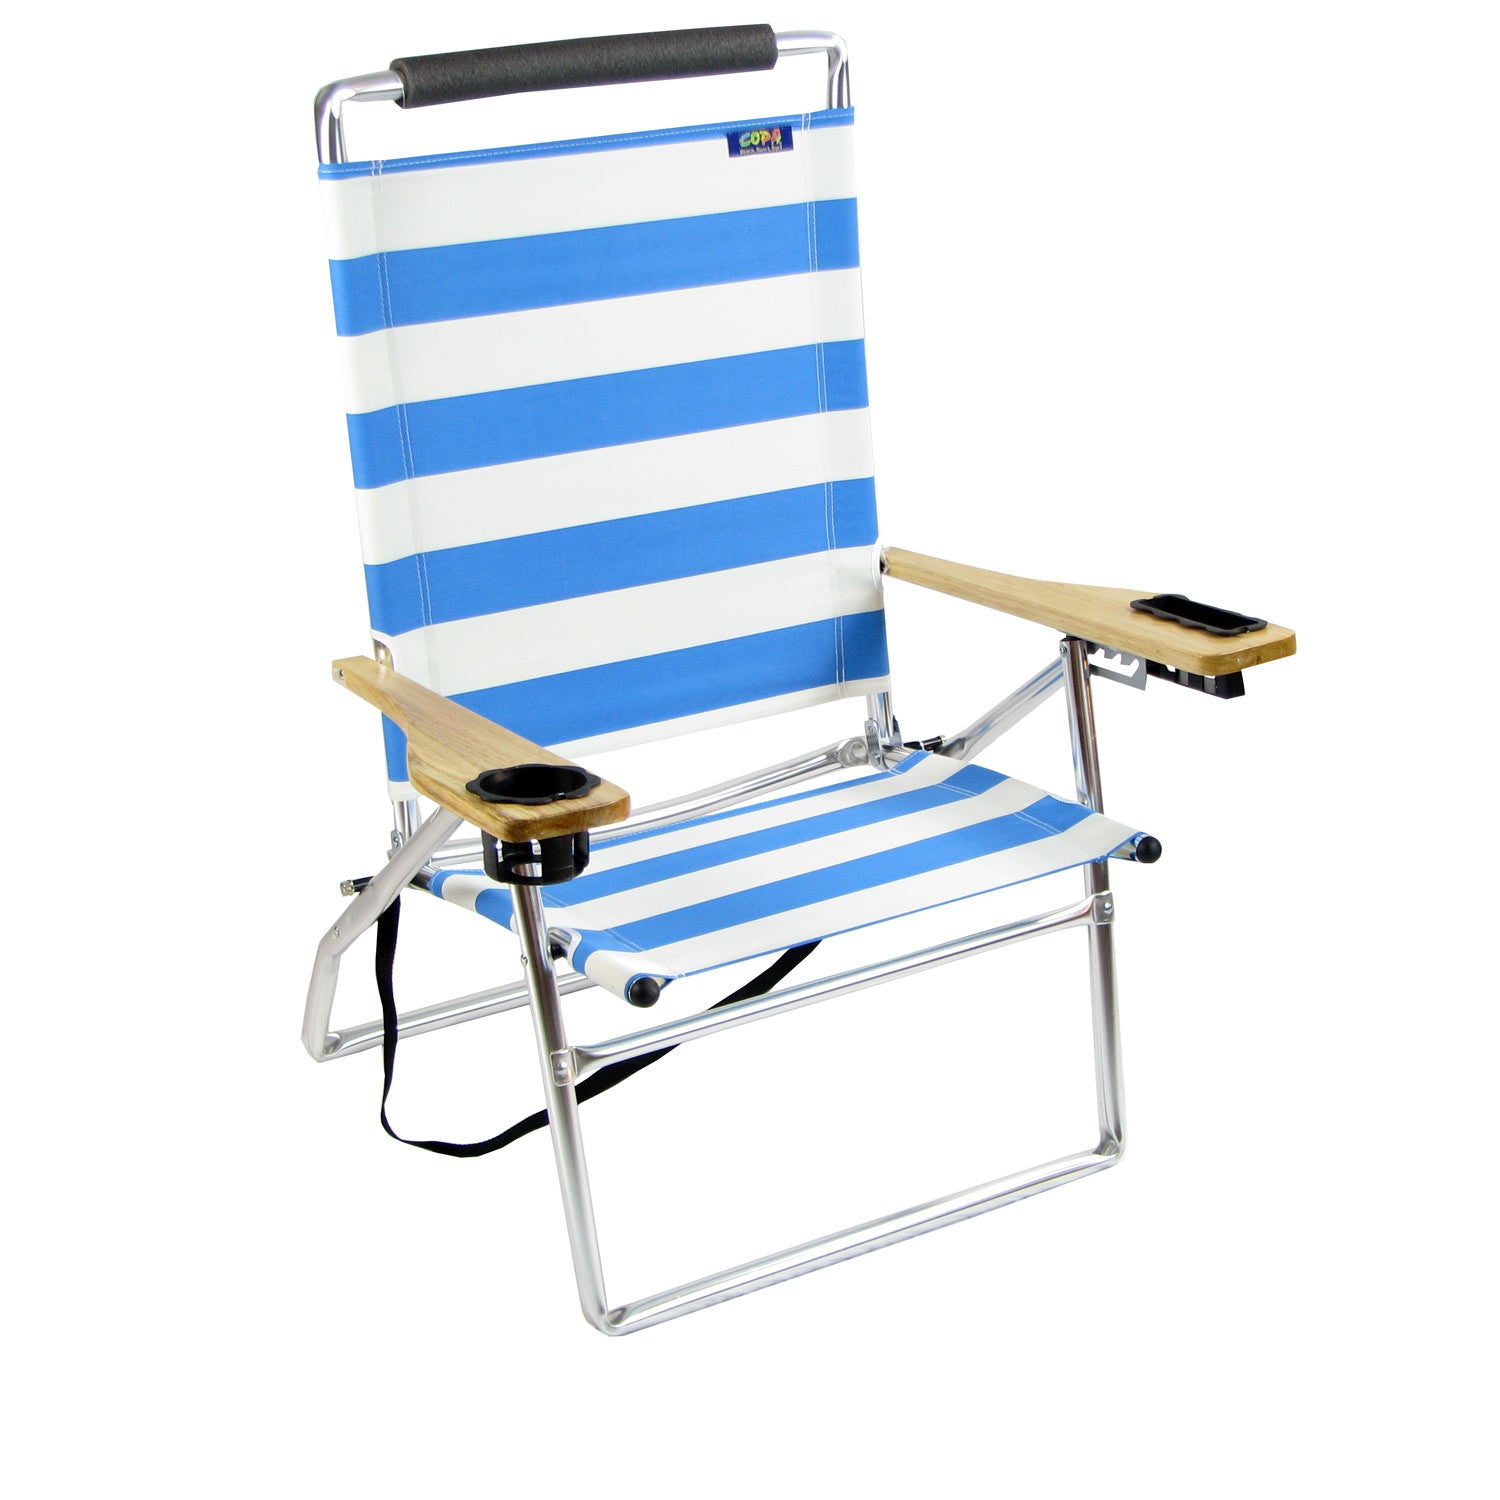 Beach chair - Adult